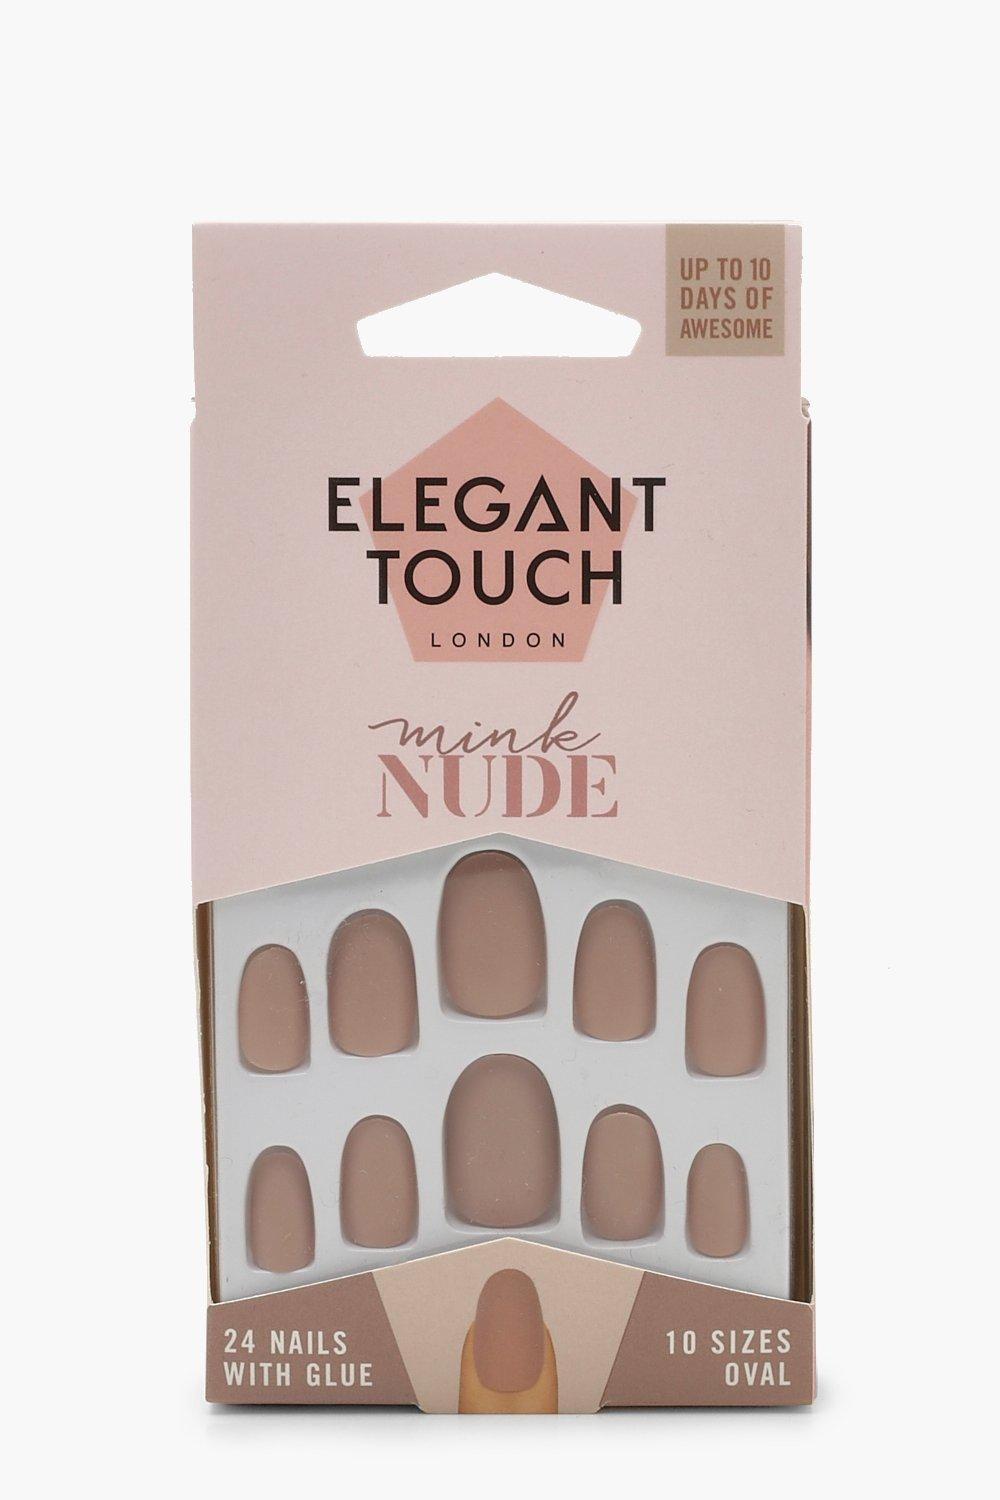 Elegant Touch Mink Nude False Nails With Glue